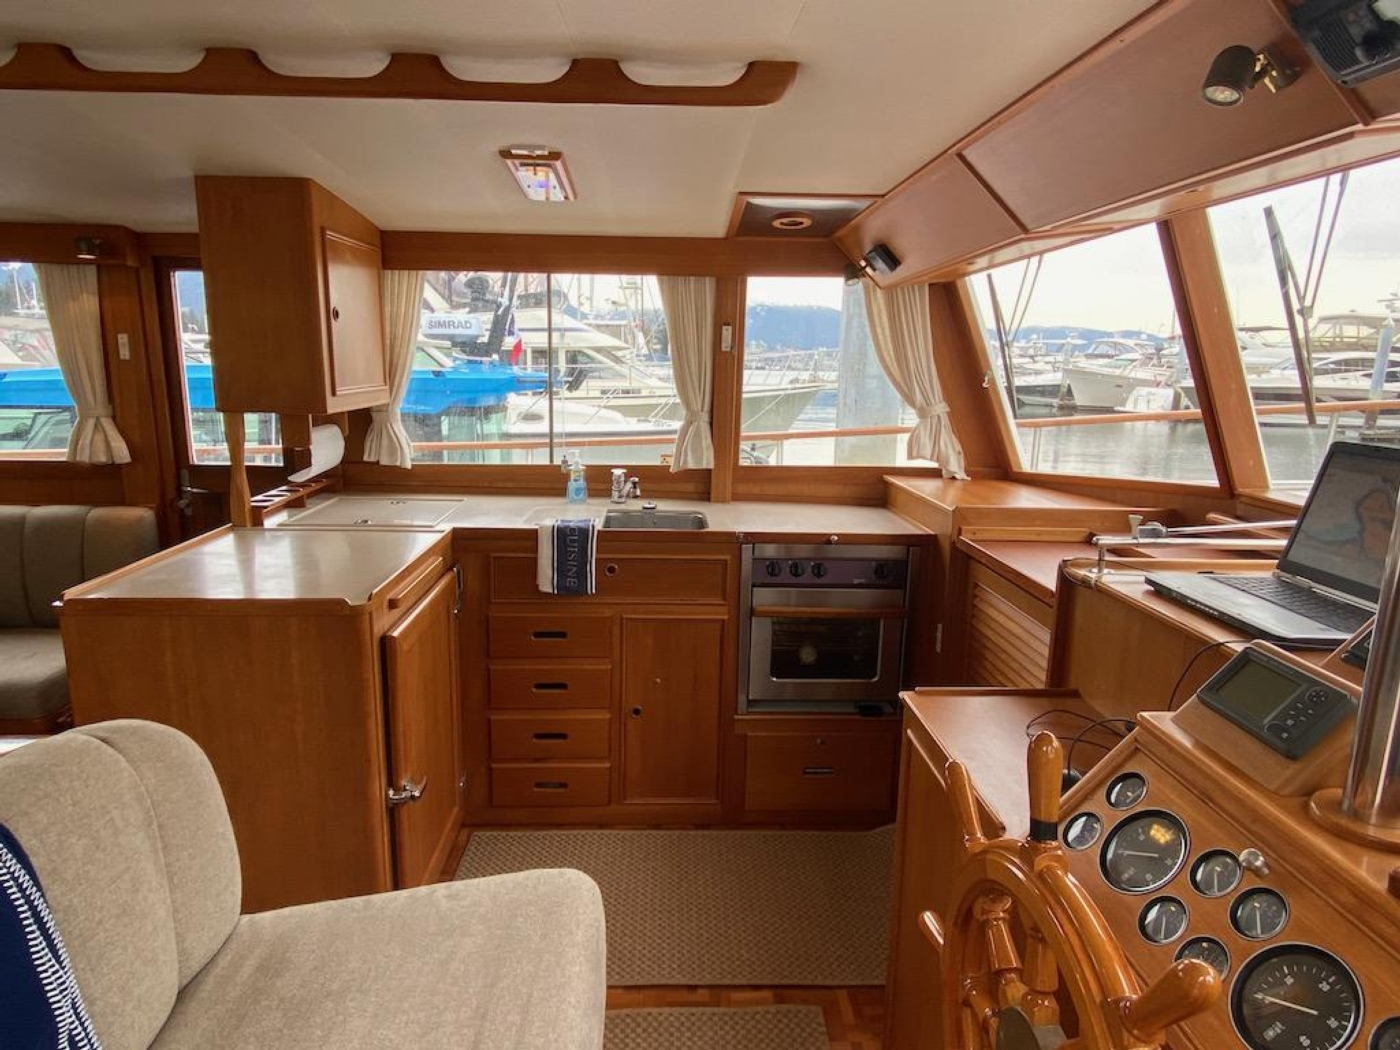 1998 Grand Banks 42 Classic, Galley 1